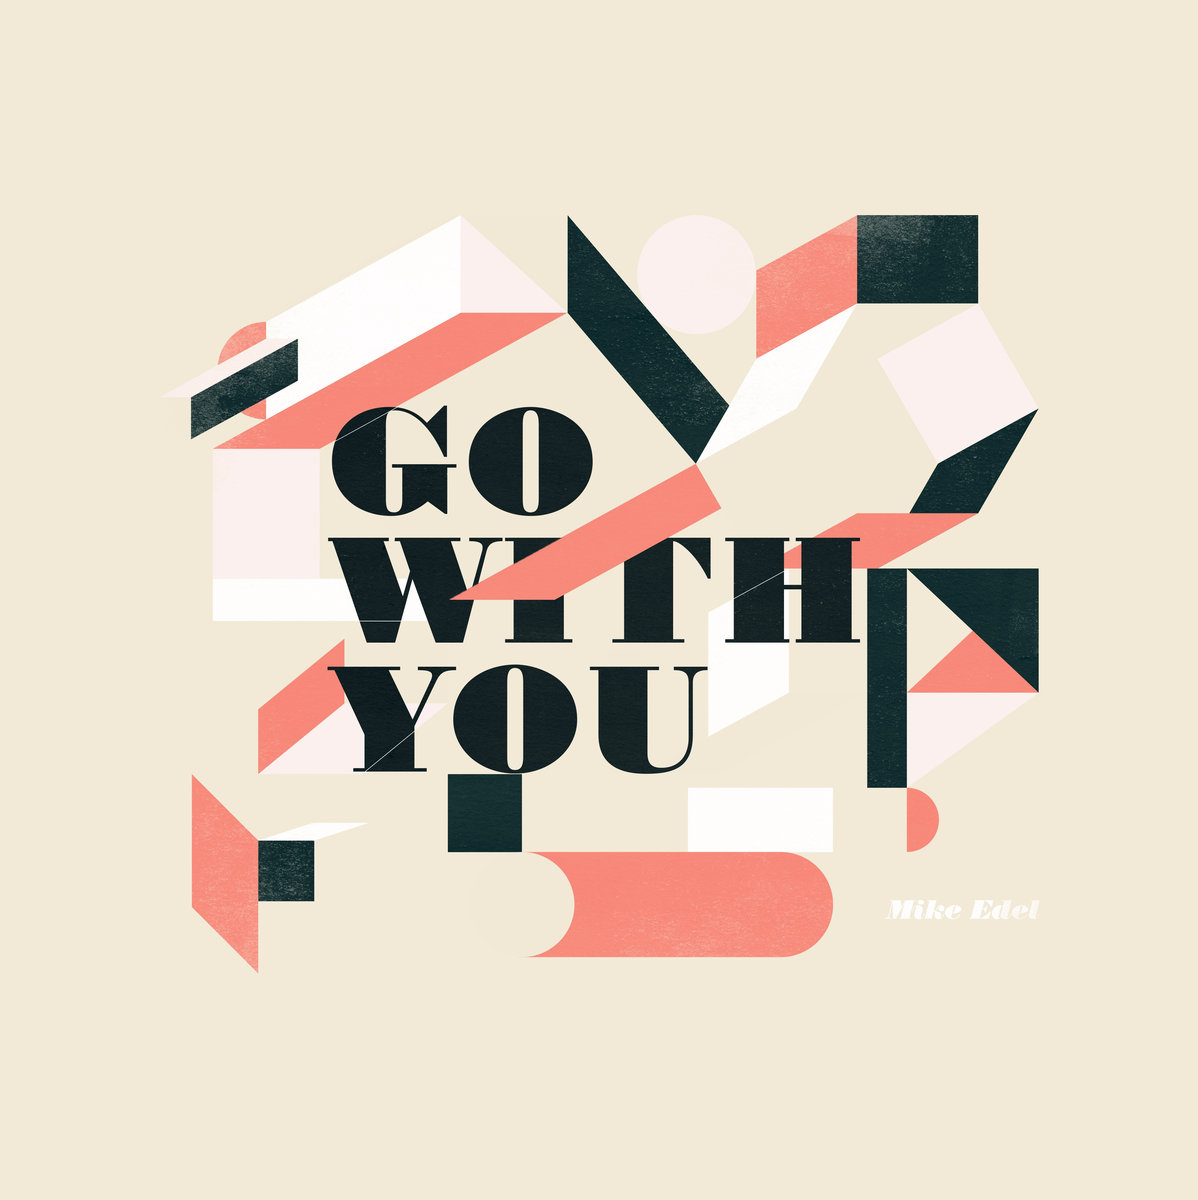 Mike Edel - Go With You